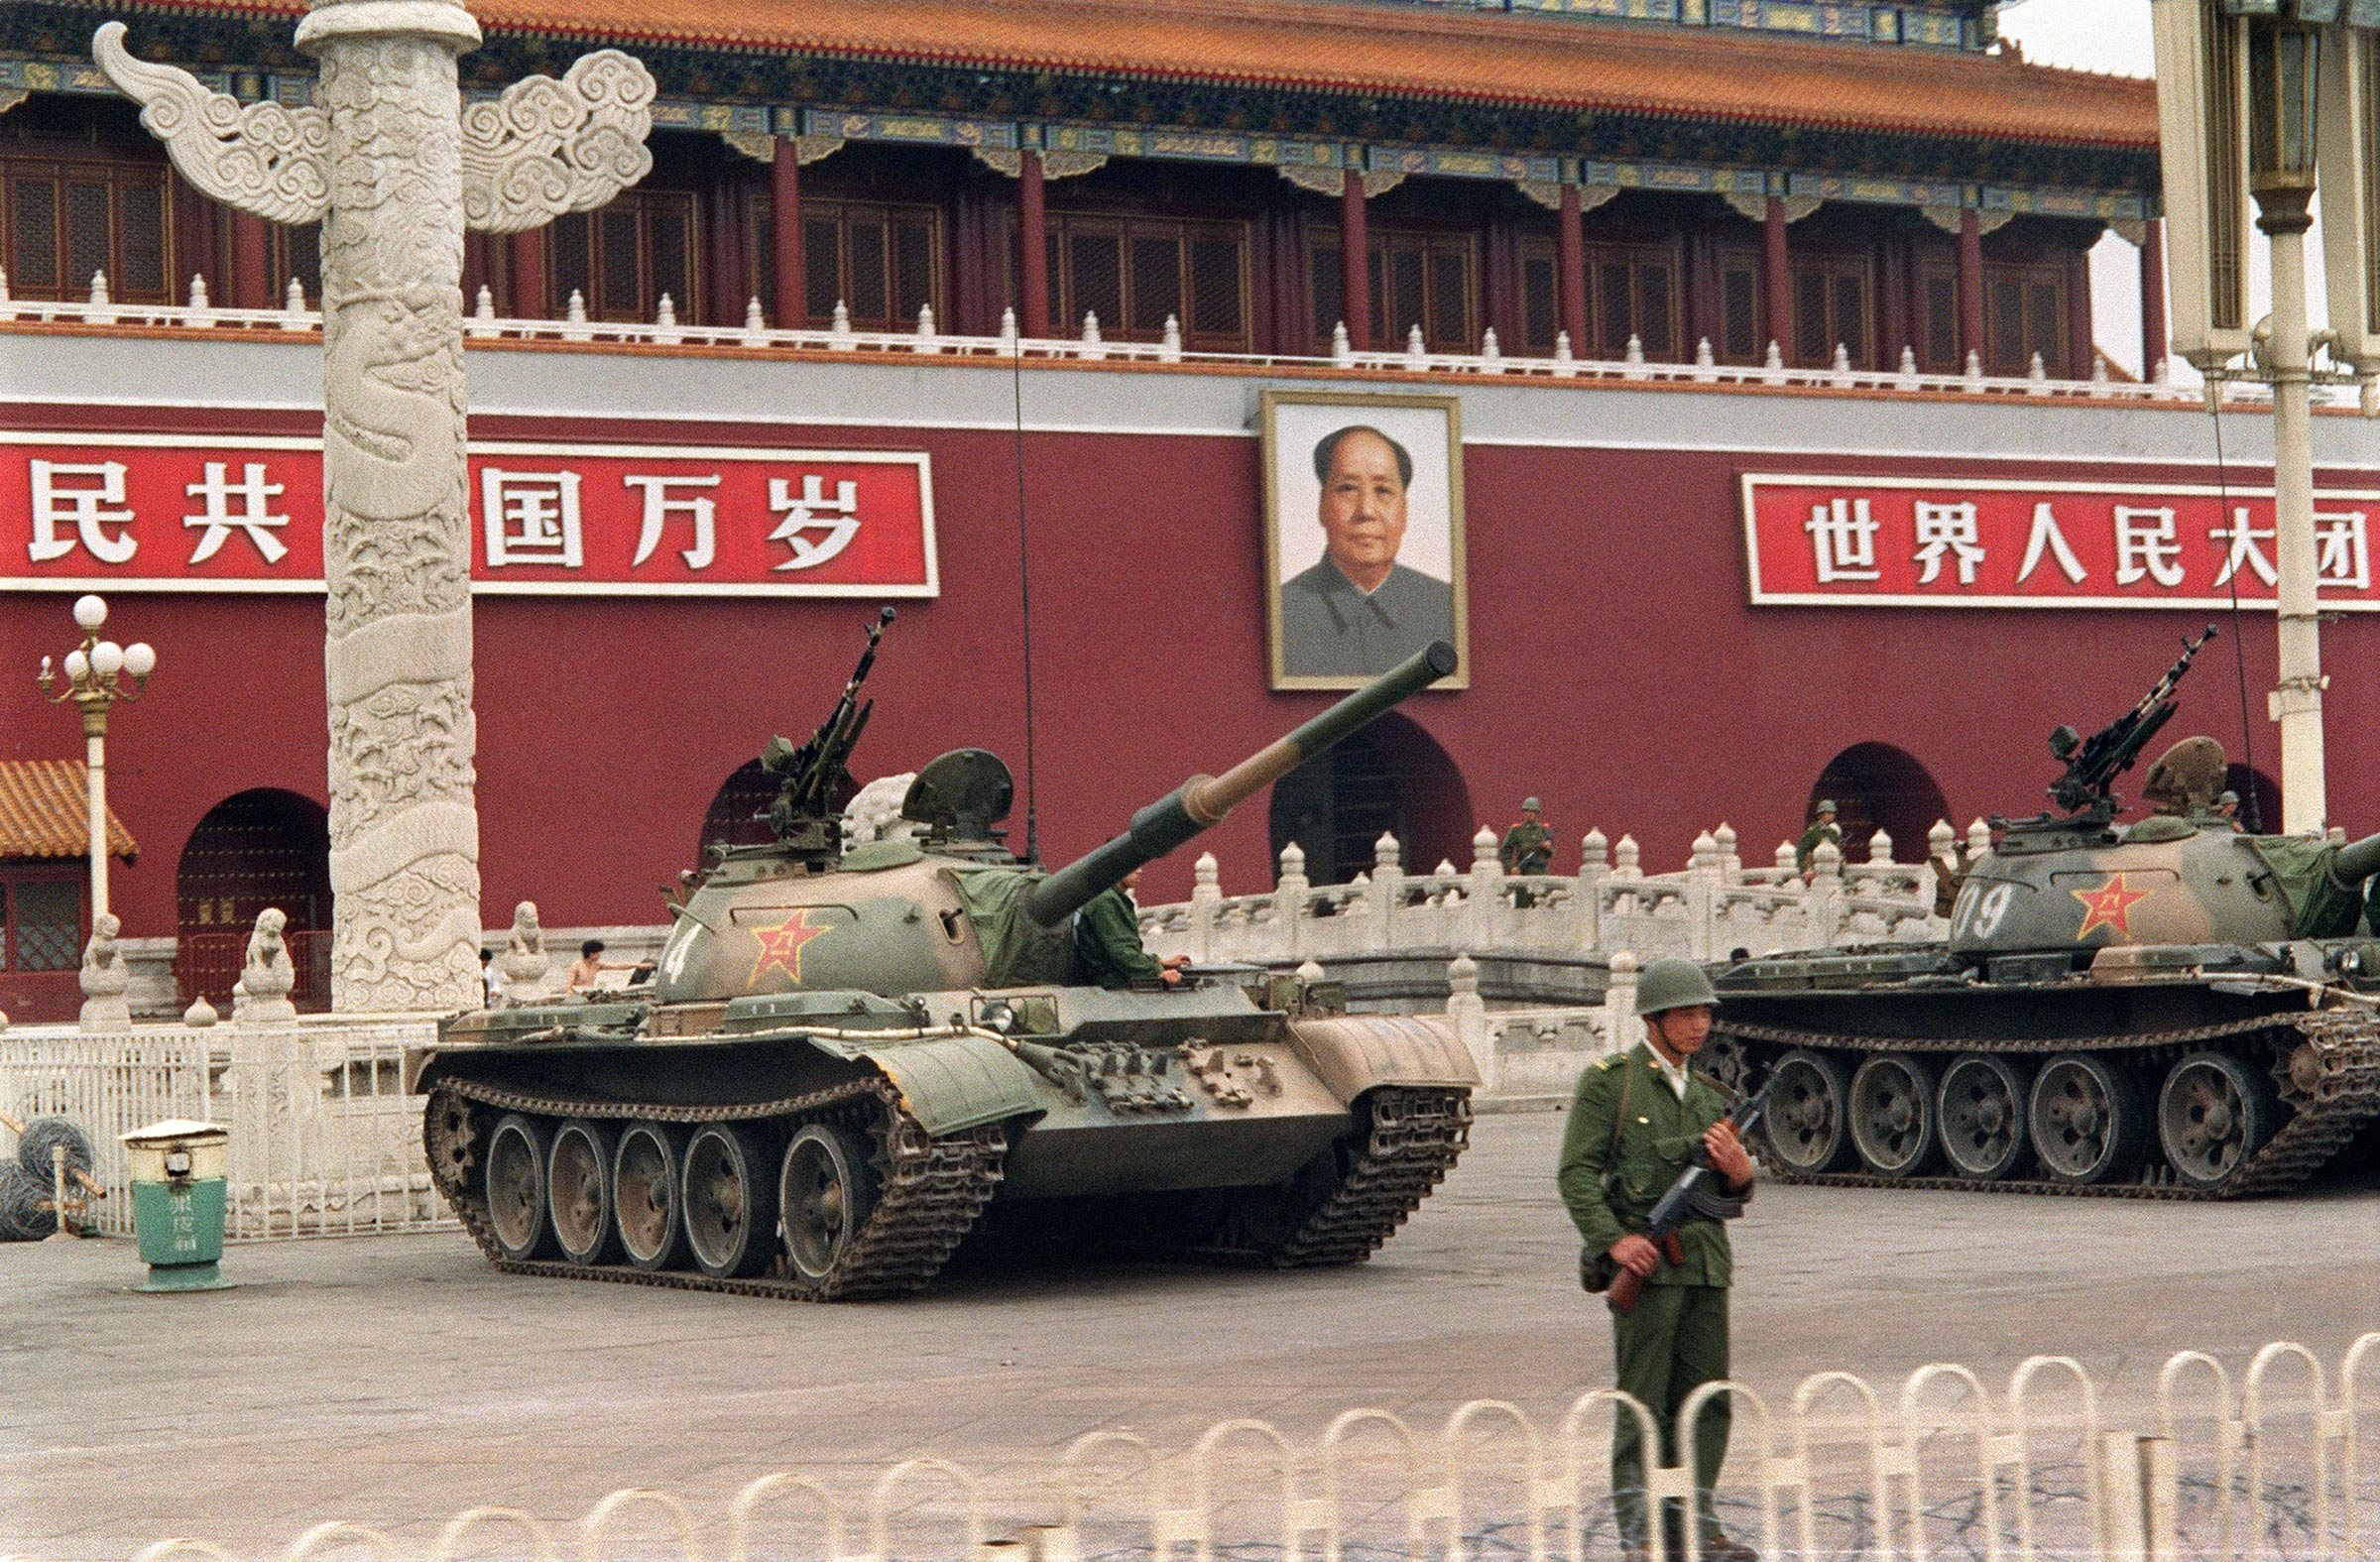 People's Liberation Army tanks are positioned at Tiananmen Square on June 9, 1989.